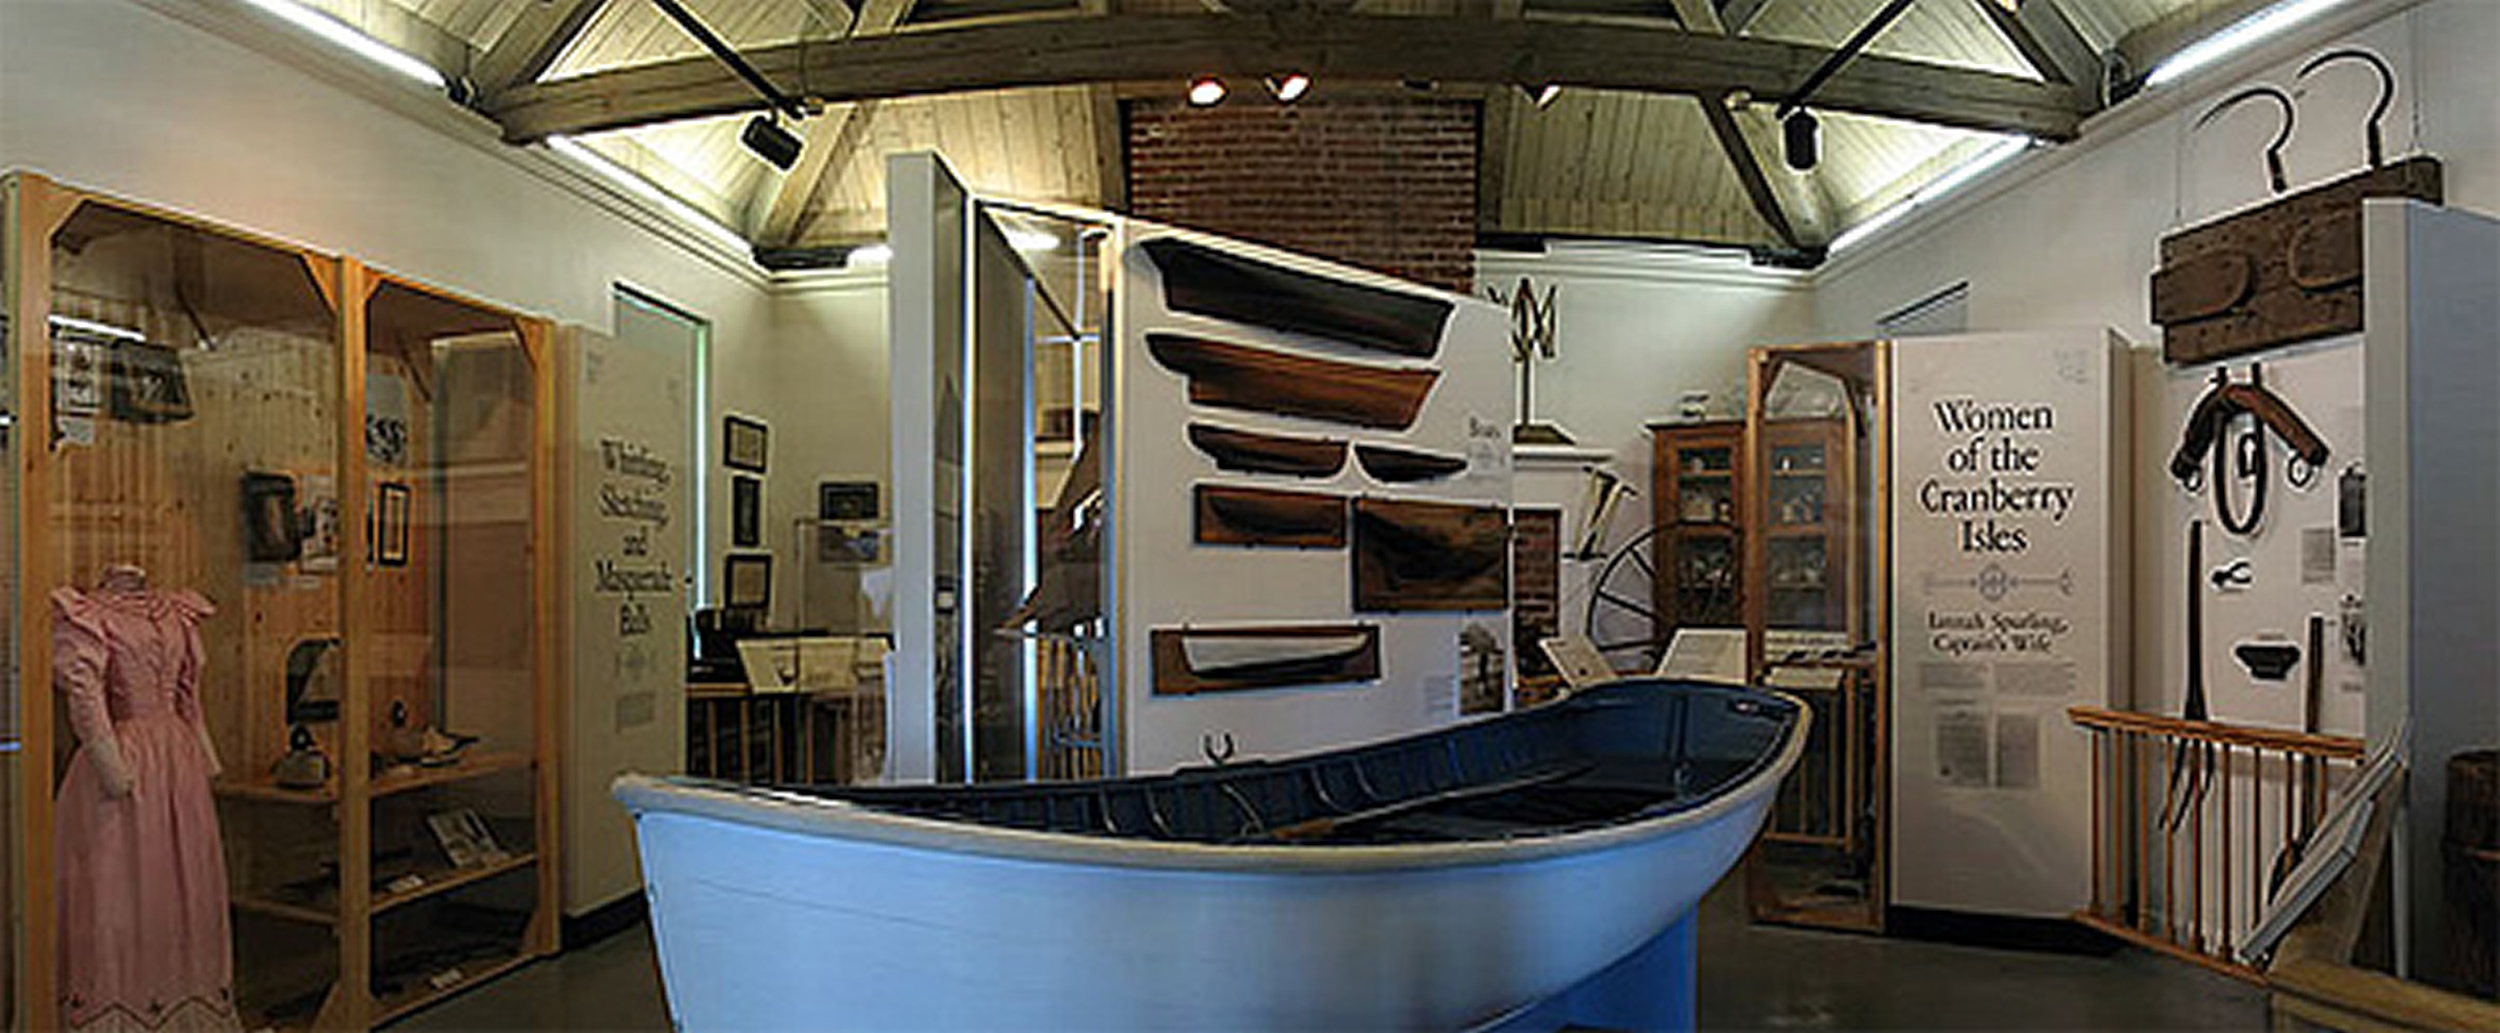 View inside the museum